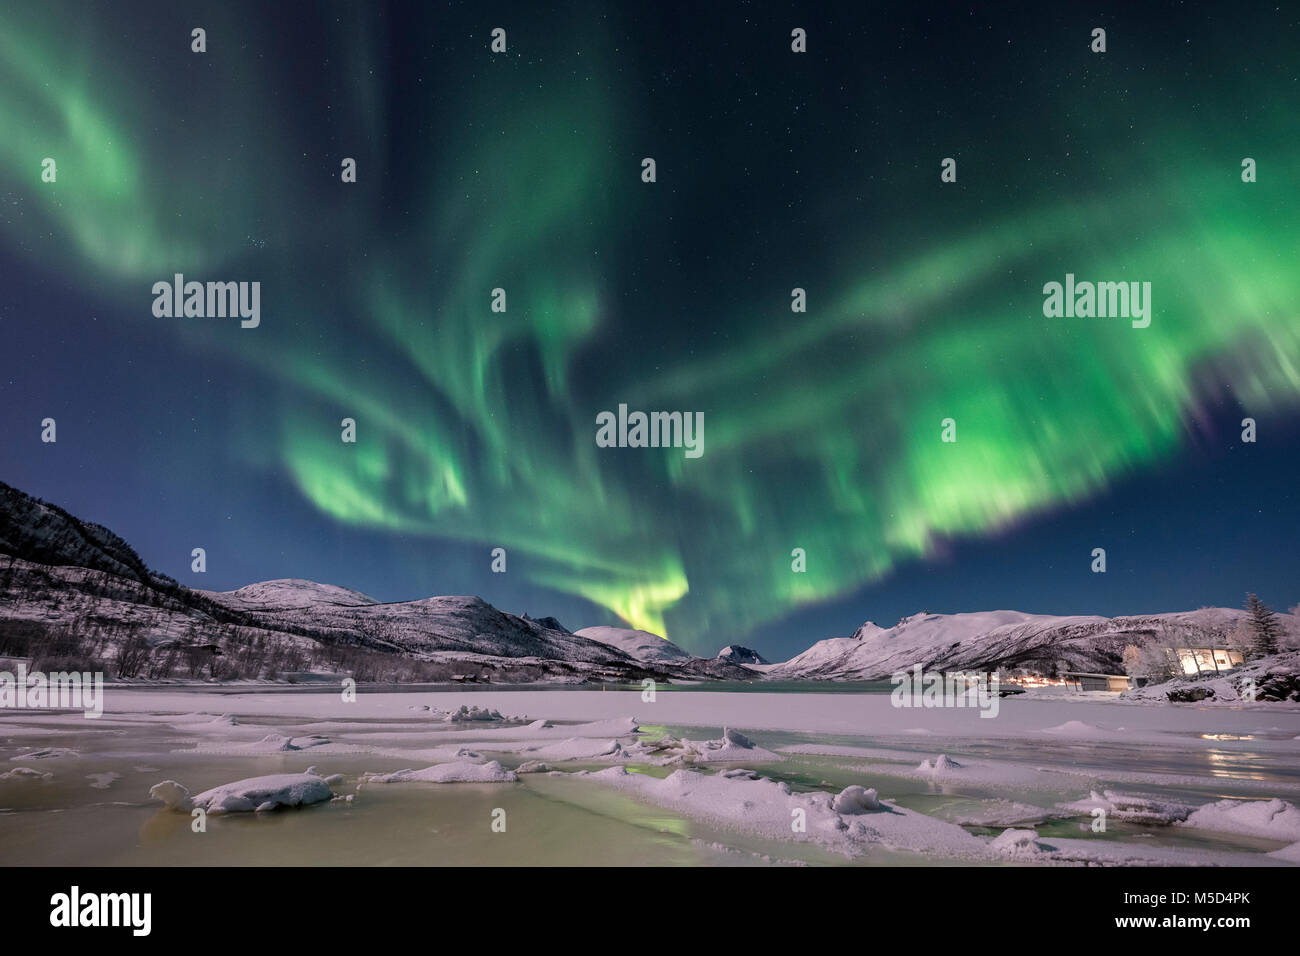 Northern lights over the Senja Island, Troms, Norway - Stock Image